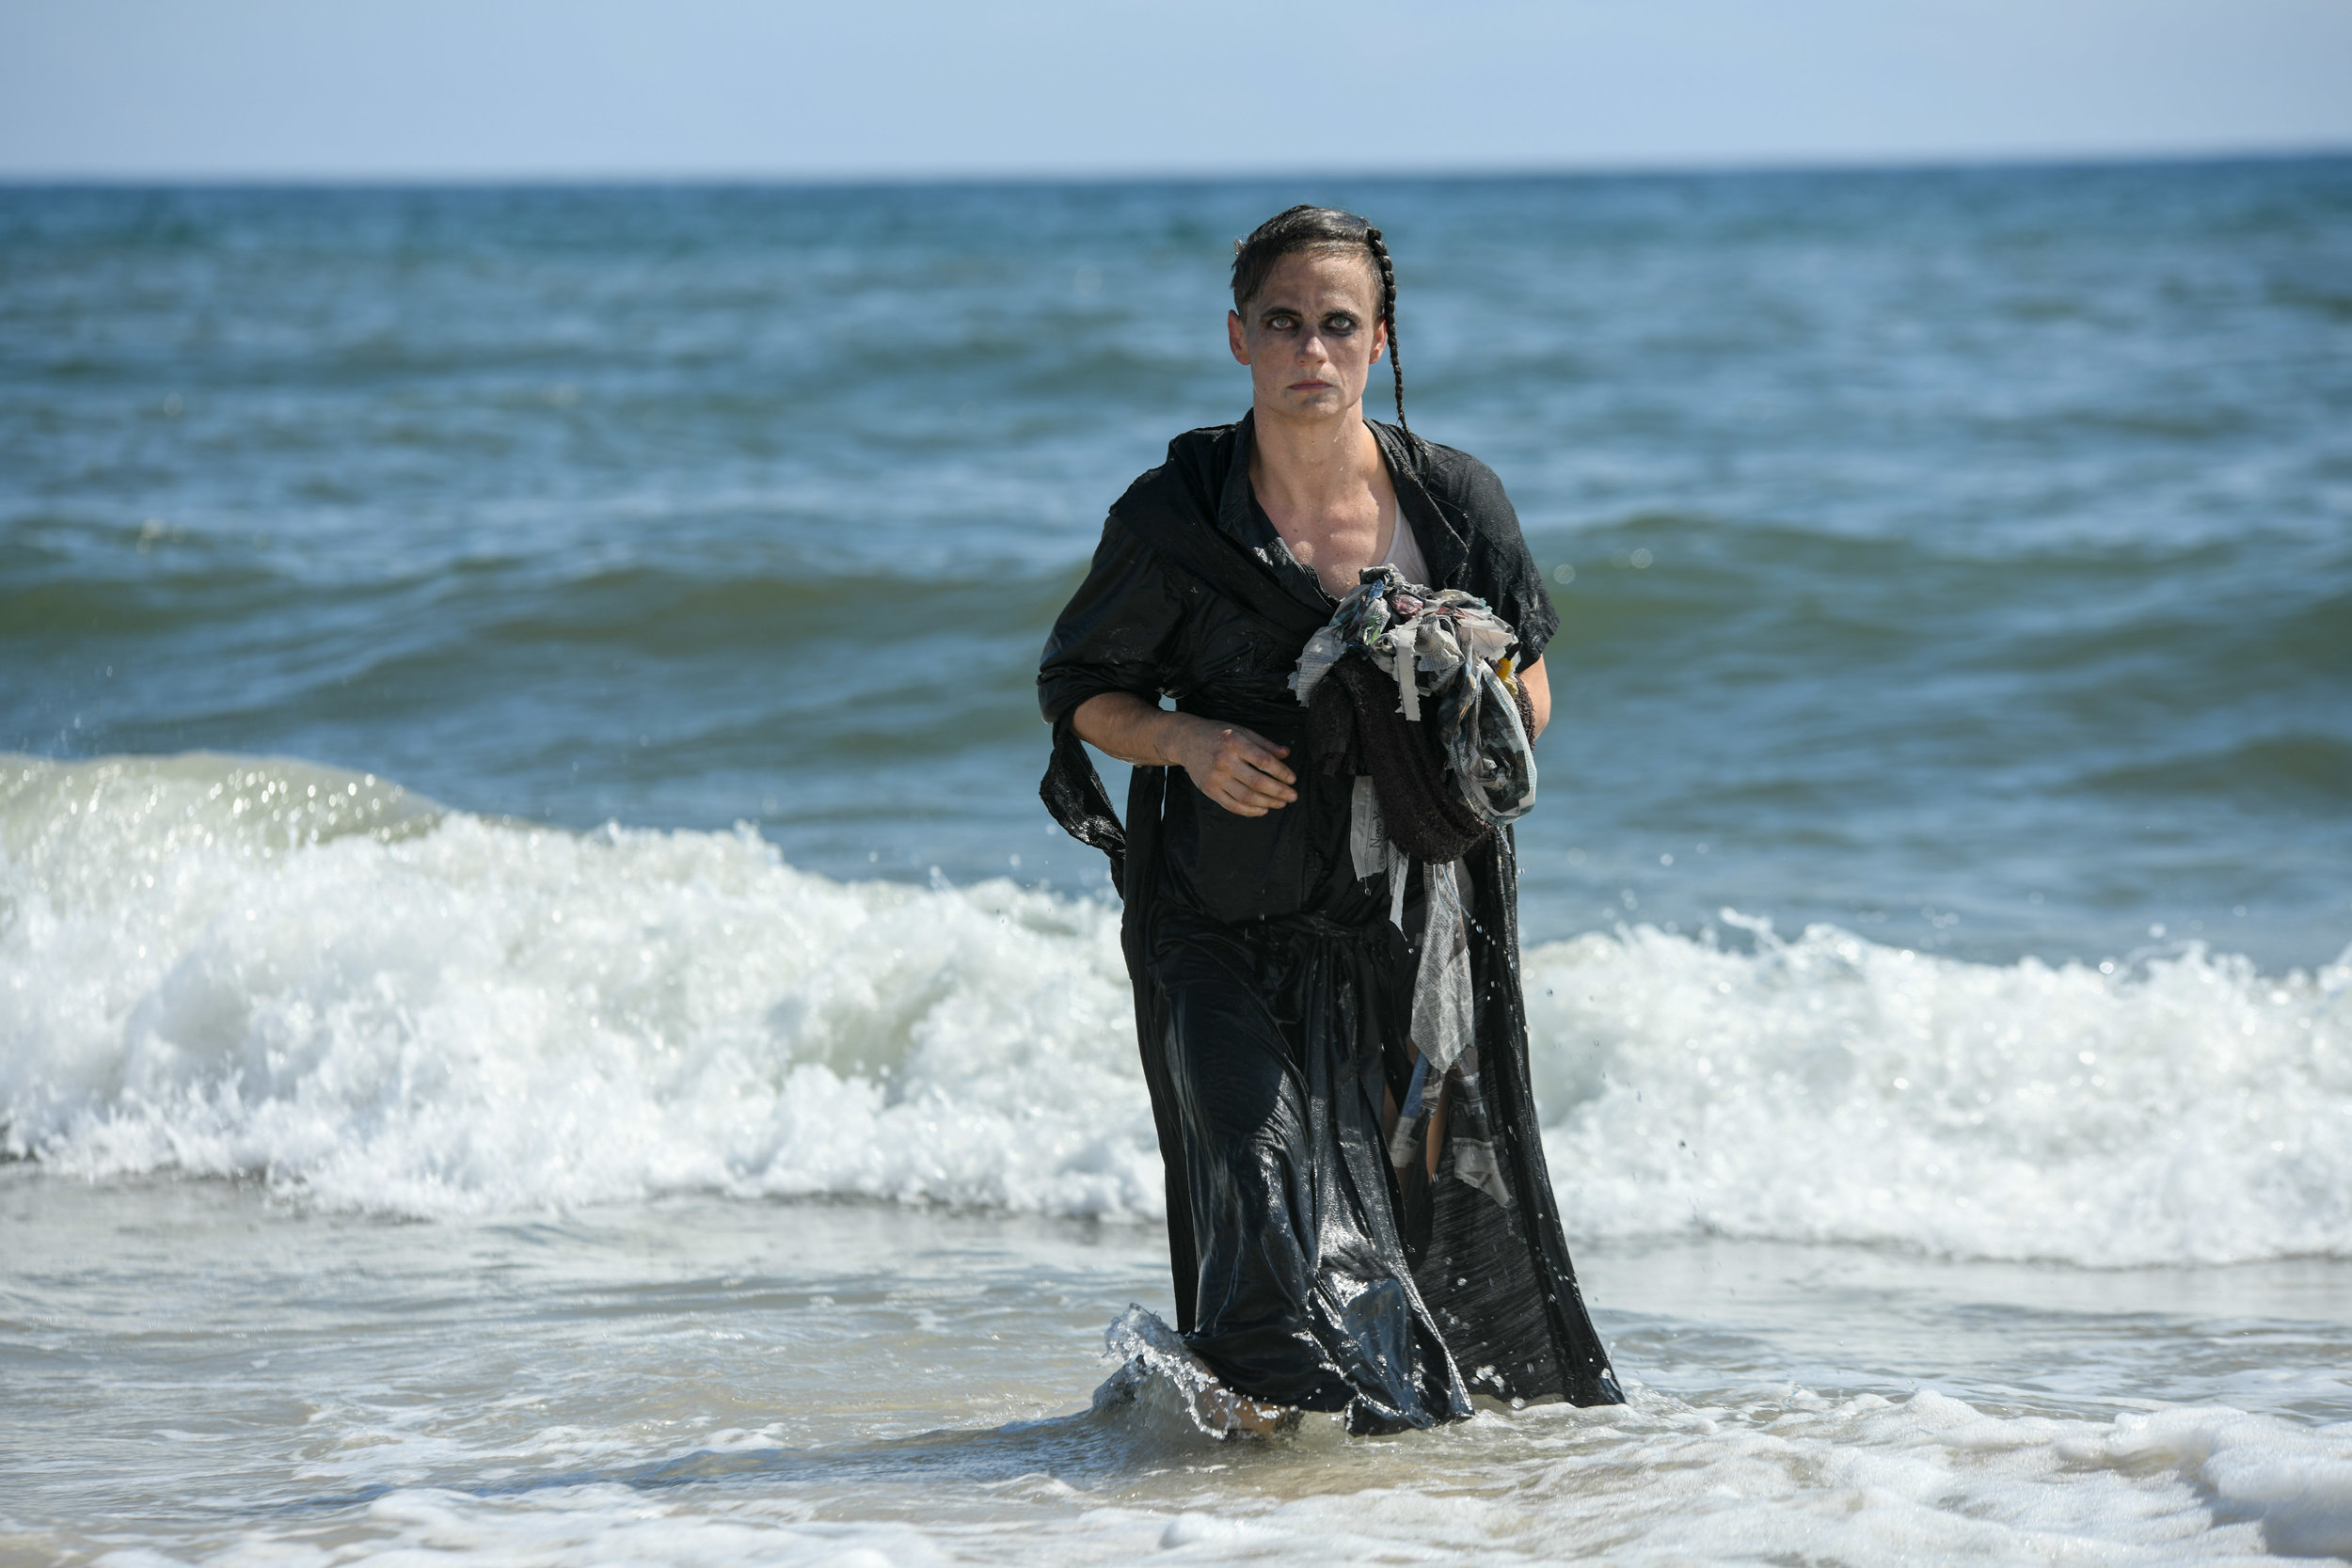 Nosferatu-On-The-Beach-8-Savannah-Knoop-Photo.jpg